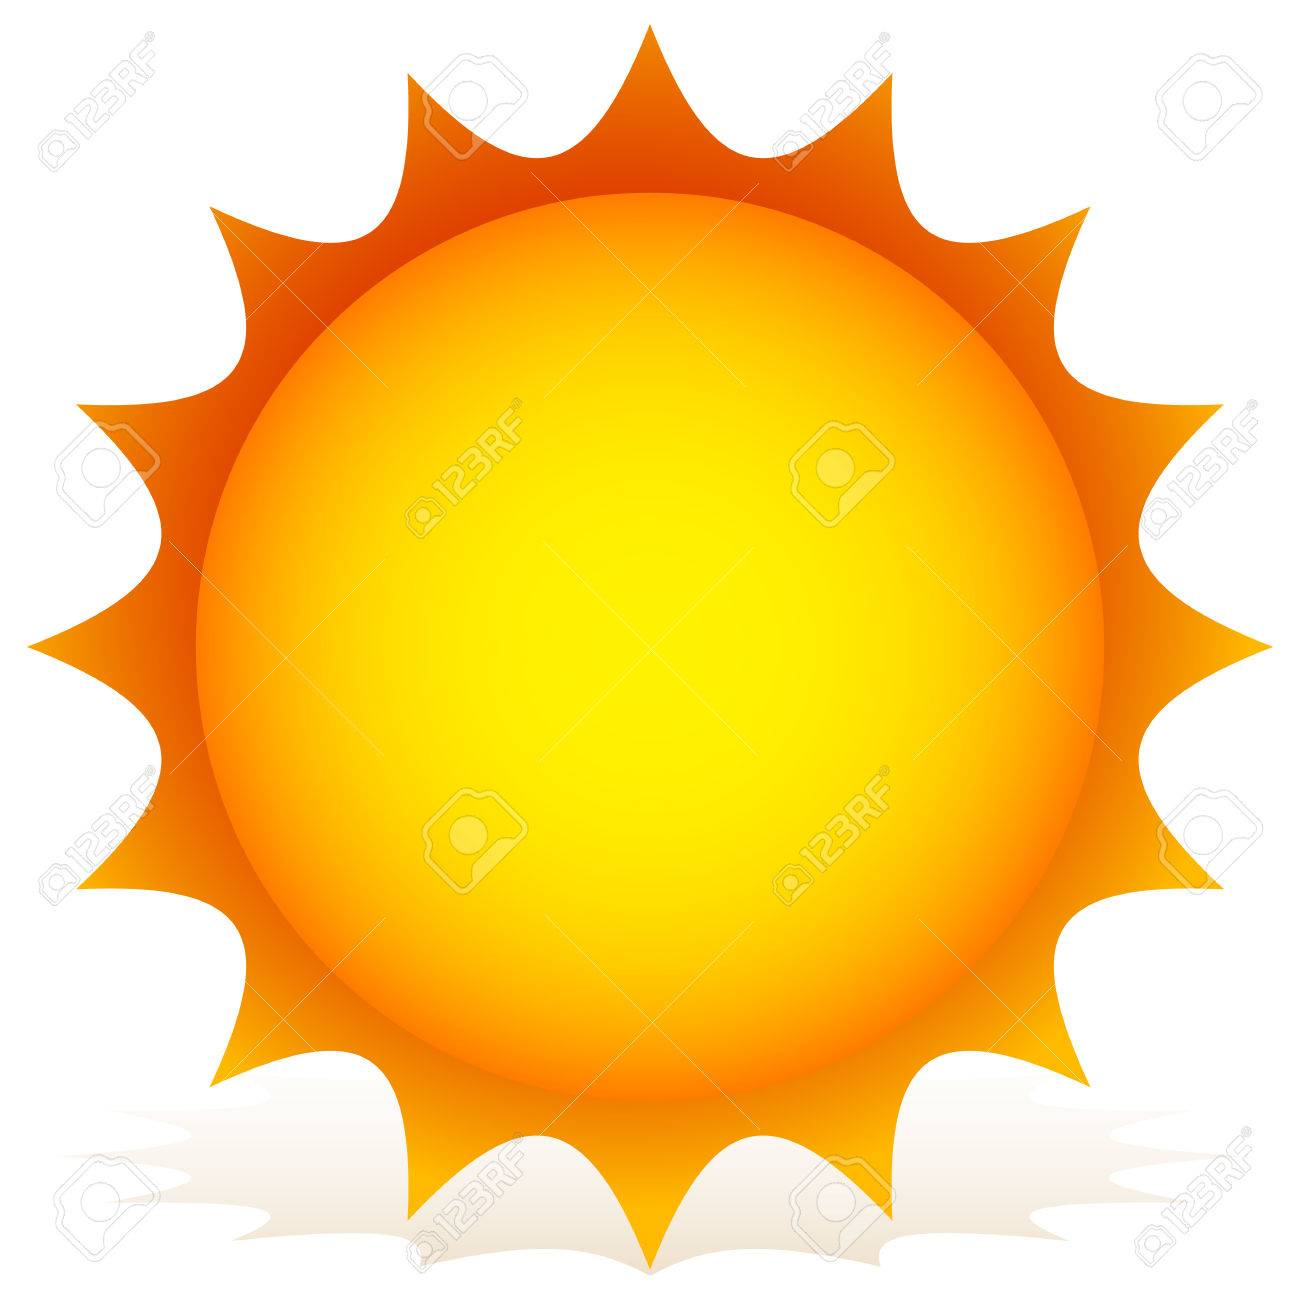 sun vector clipart royalty free cliparts vectors and stock rh 123rf com sun vector image sun vector png